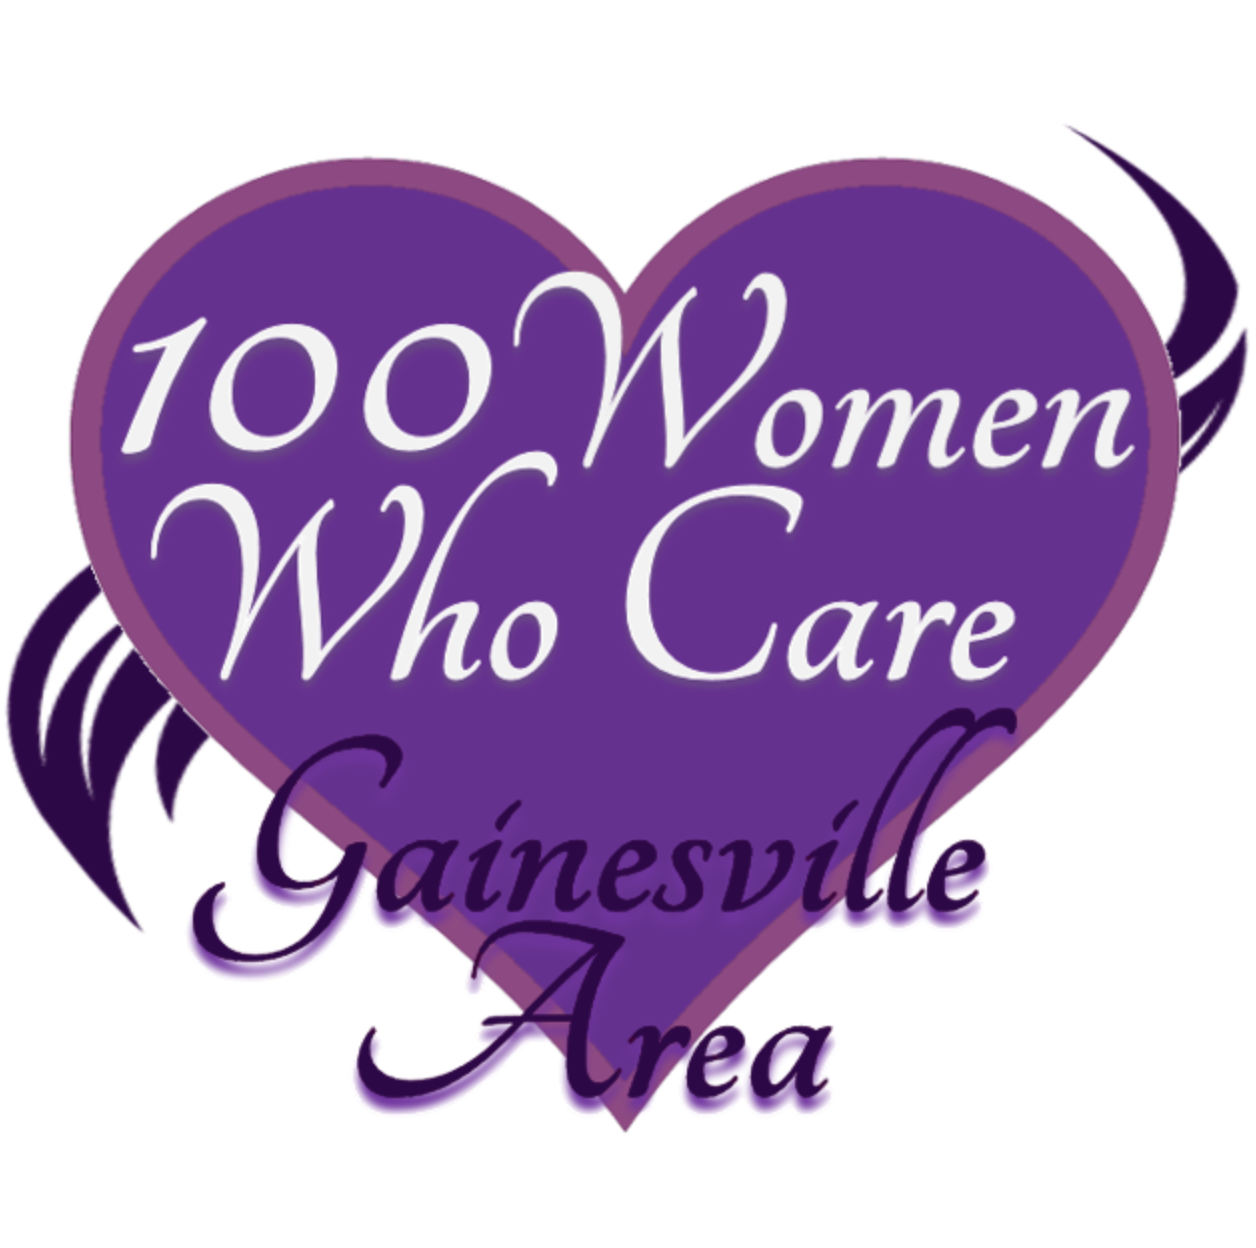 Gainesville Area 100 Women Who Care